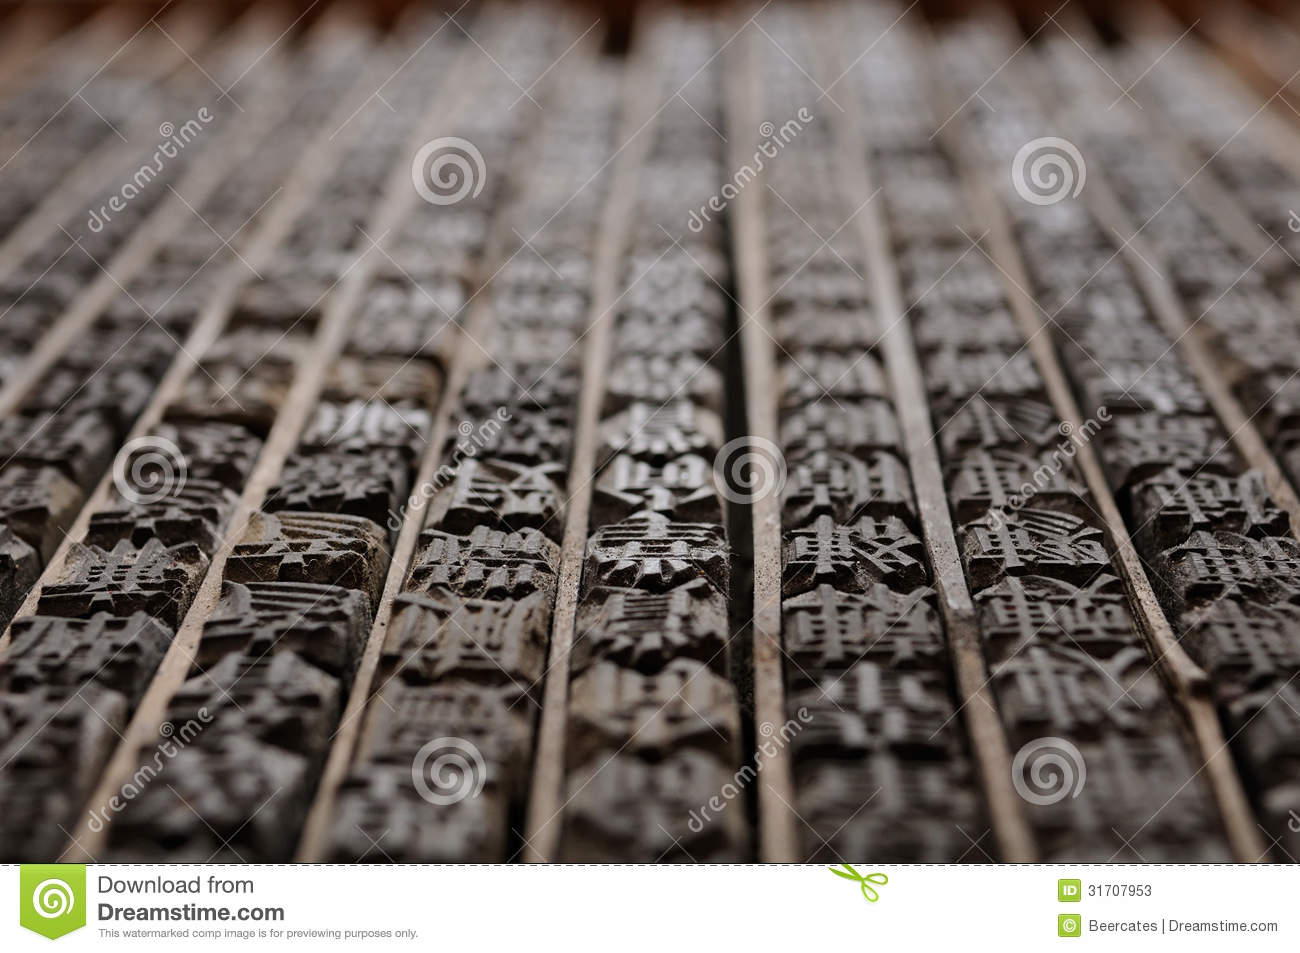 Chinese movable type system stock photos image 31707953 for Wood in chinese